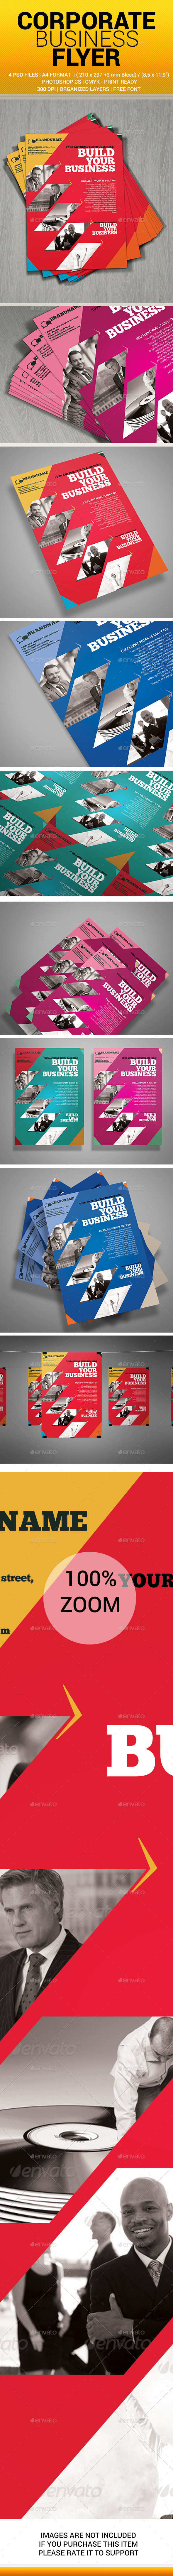 Corporate-Business_Flyer-v05-A4 - Corporate Flyers